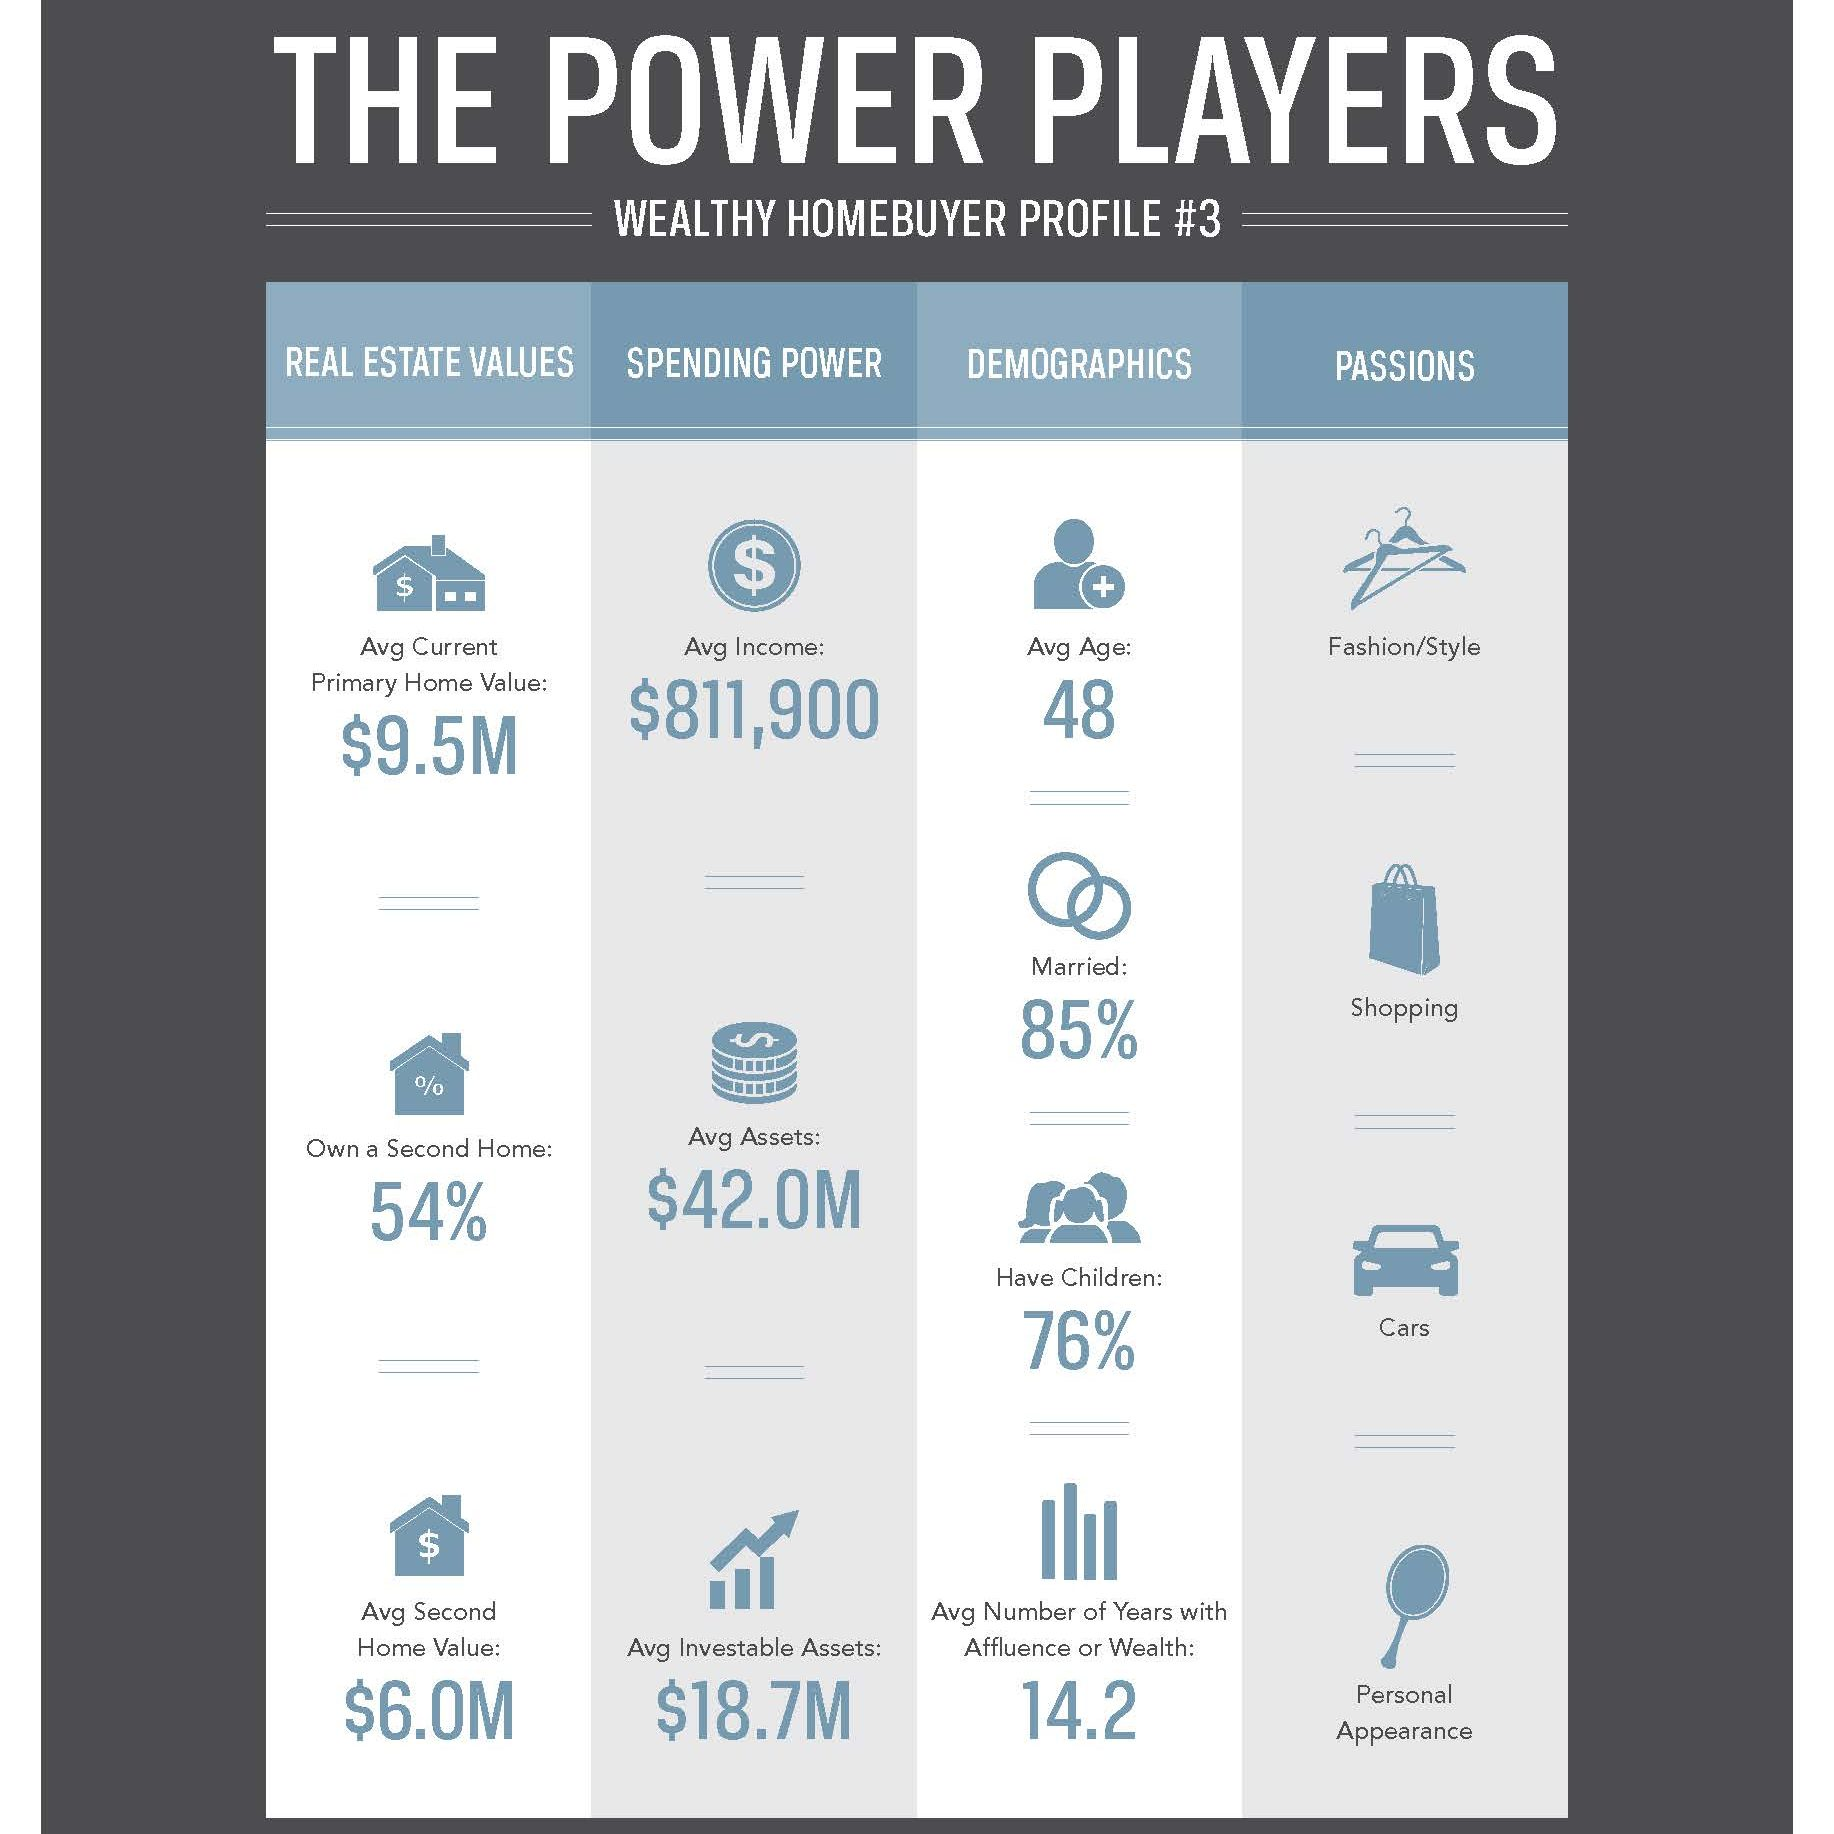 The Power Players